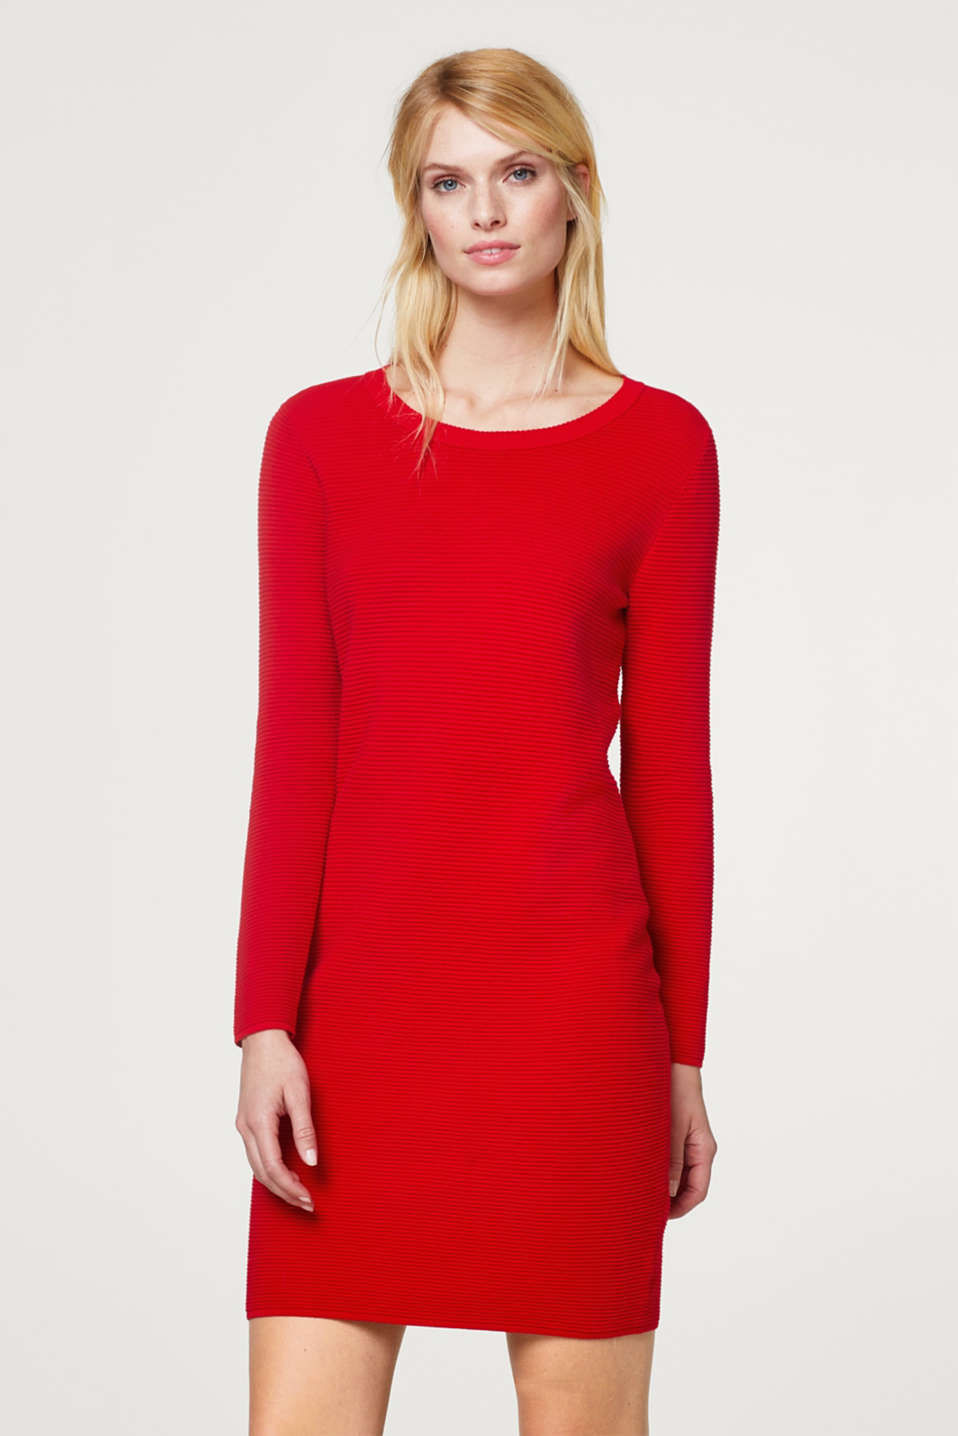 Esprit - Jersey dress with a finely ribbed texture